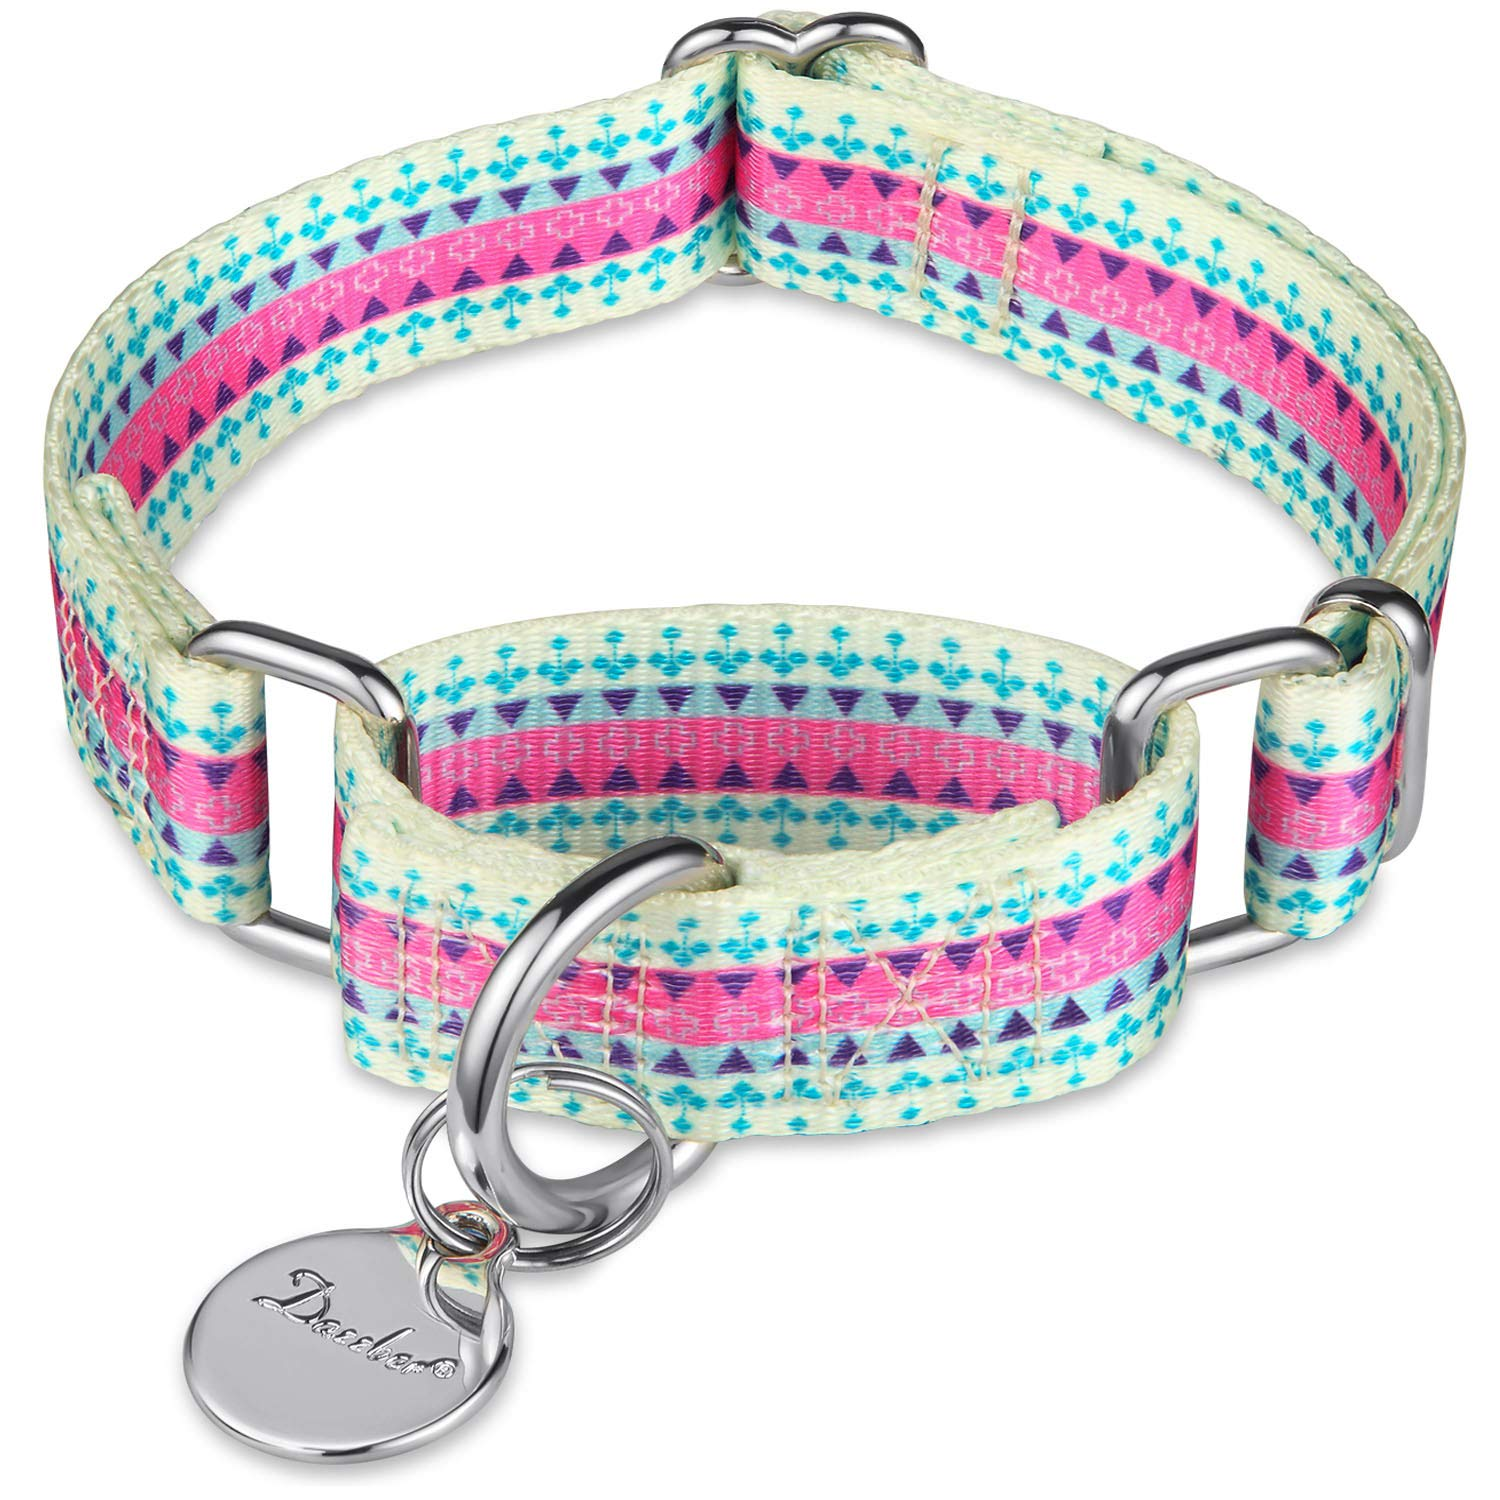 Dazzber Martingale Collar Dog